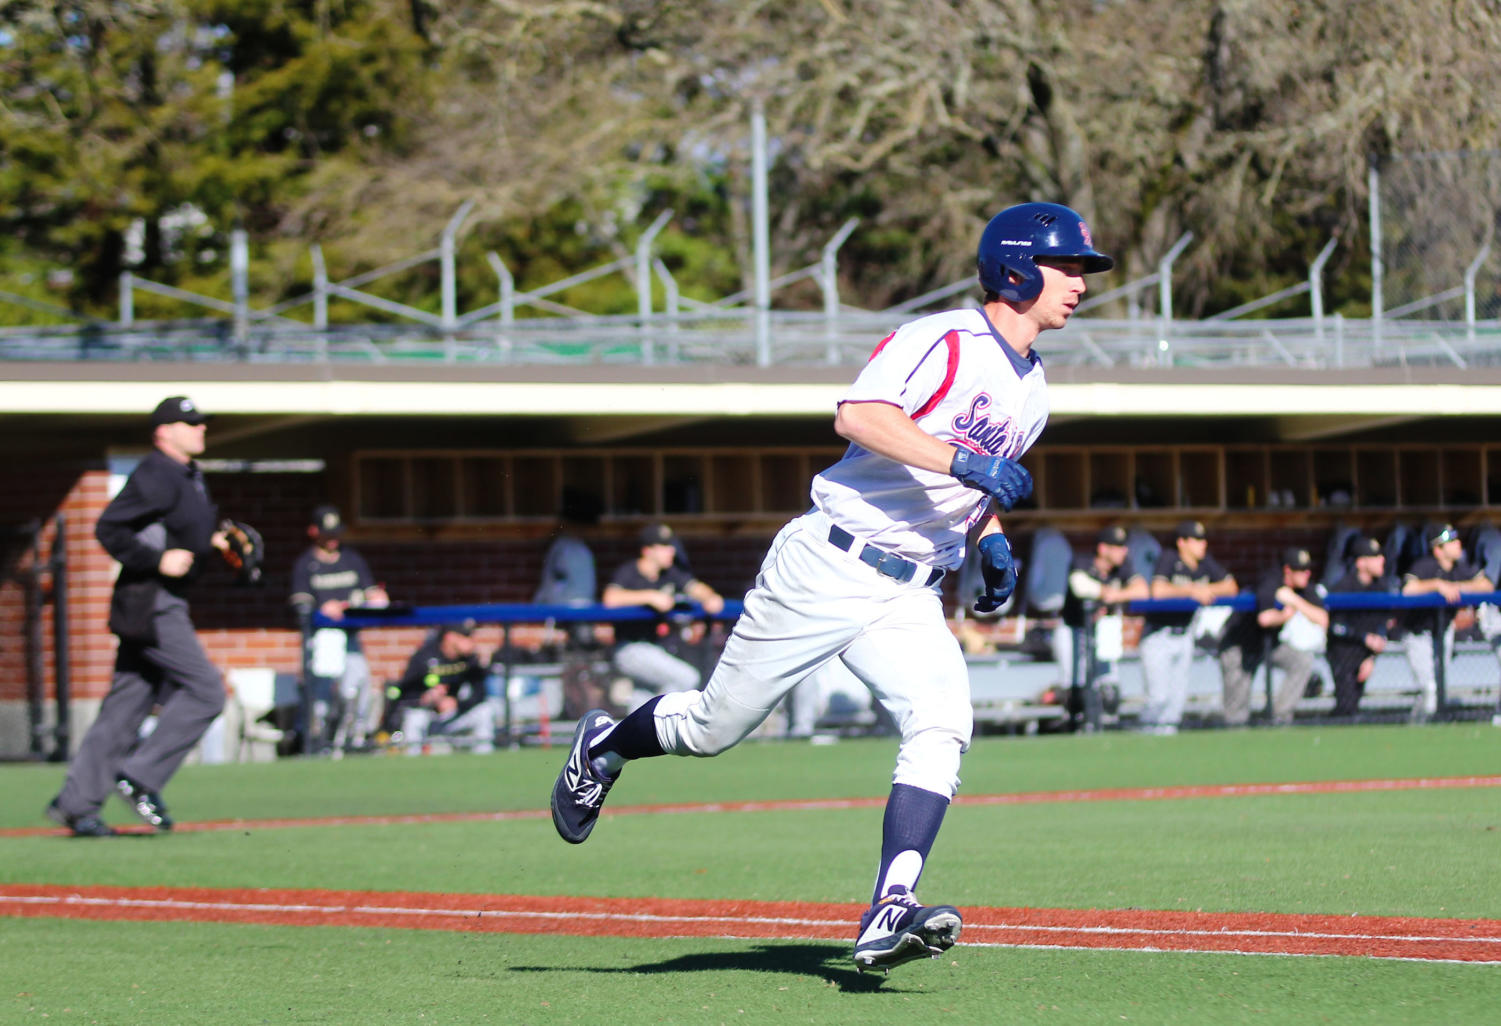 Outfielder Tayler Cullen sprinted to first base In the second inning of SRJC's 8-5 victory over College of Marin.